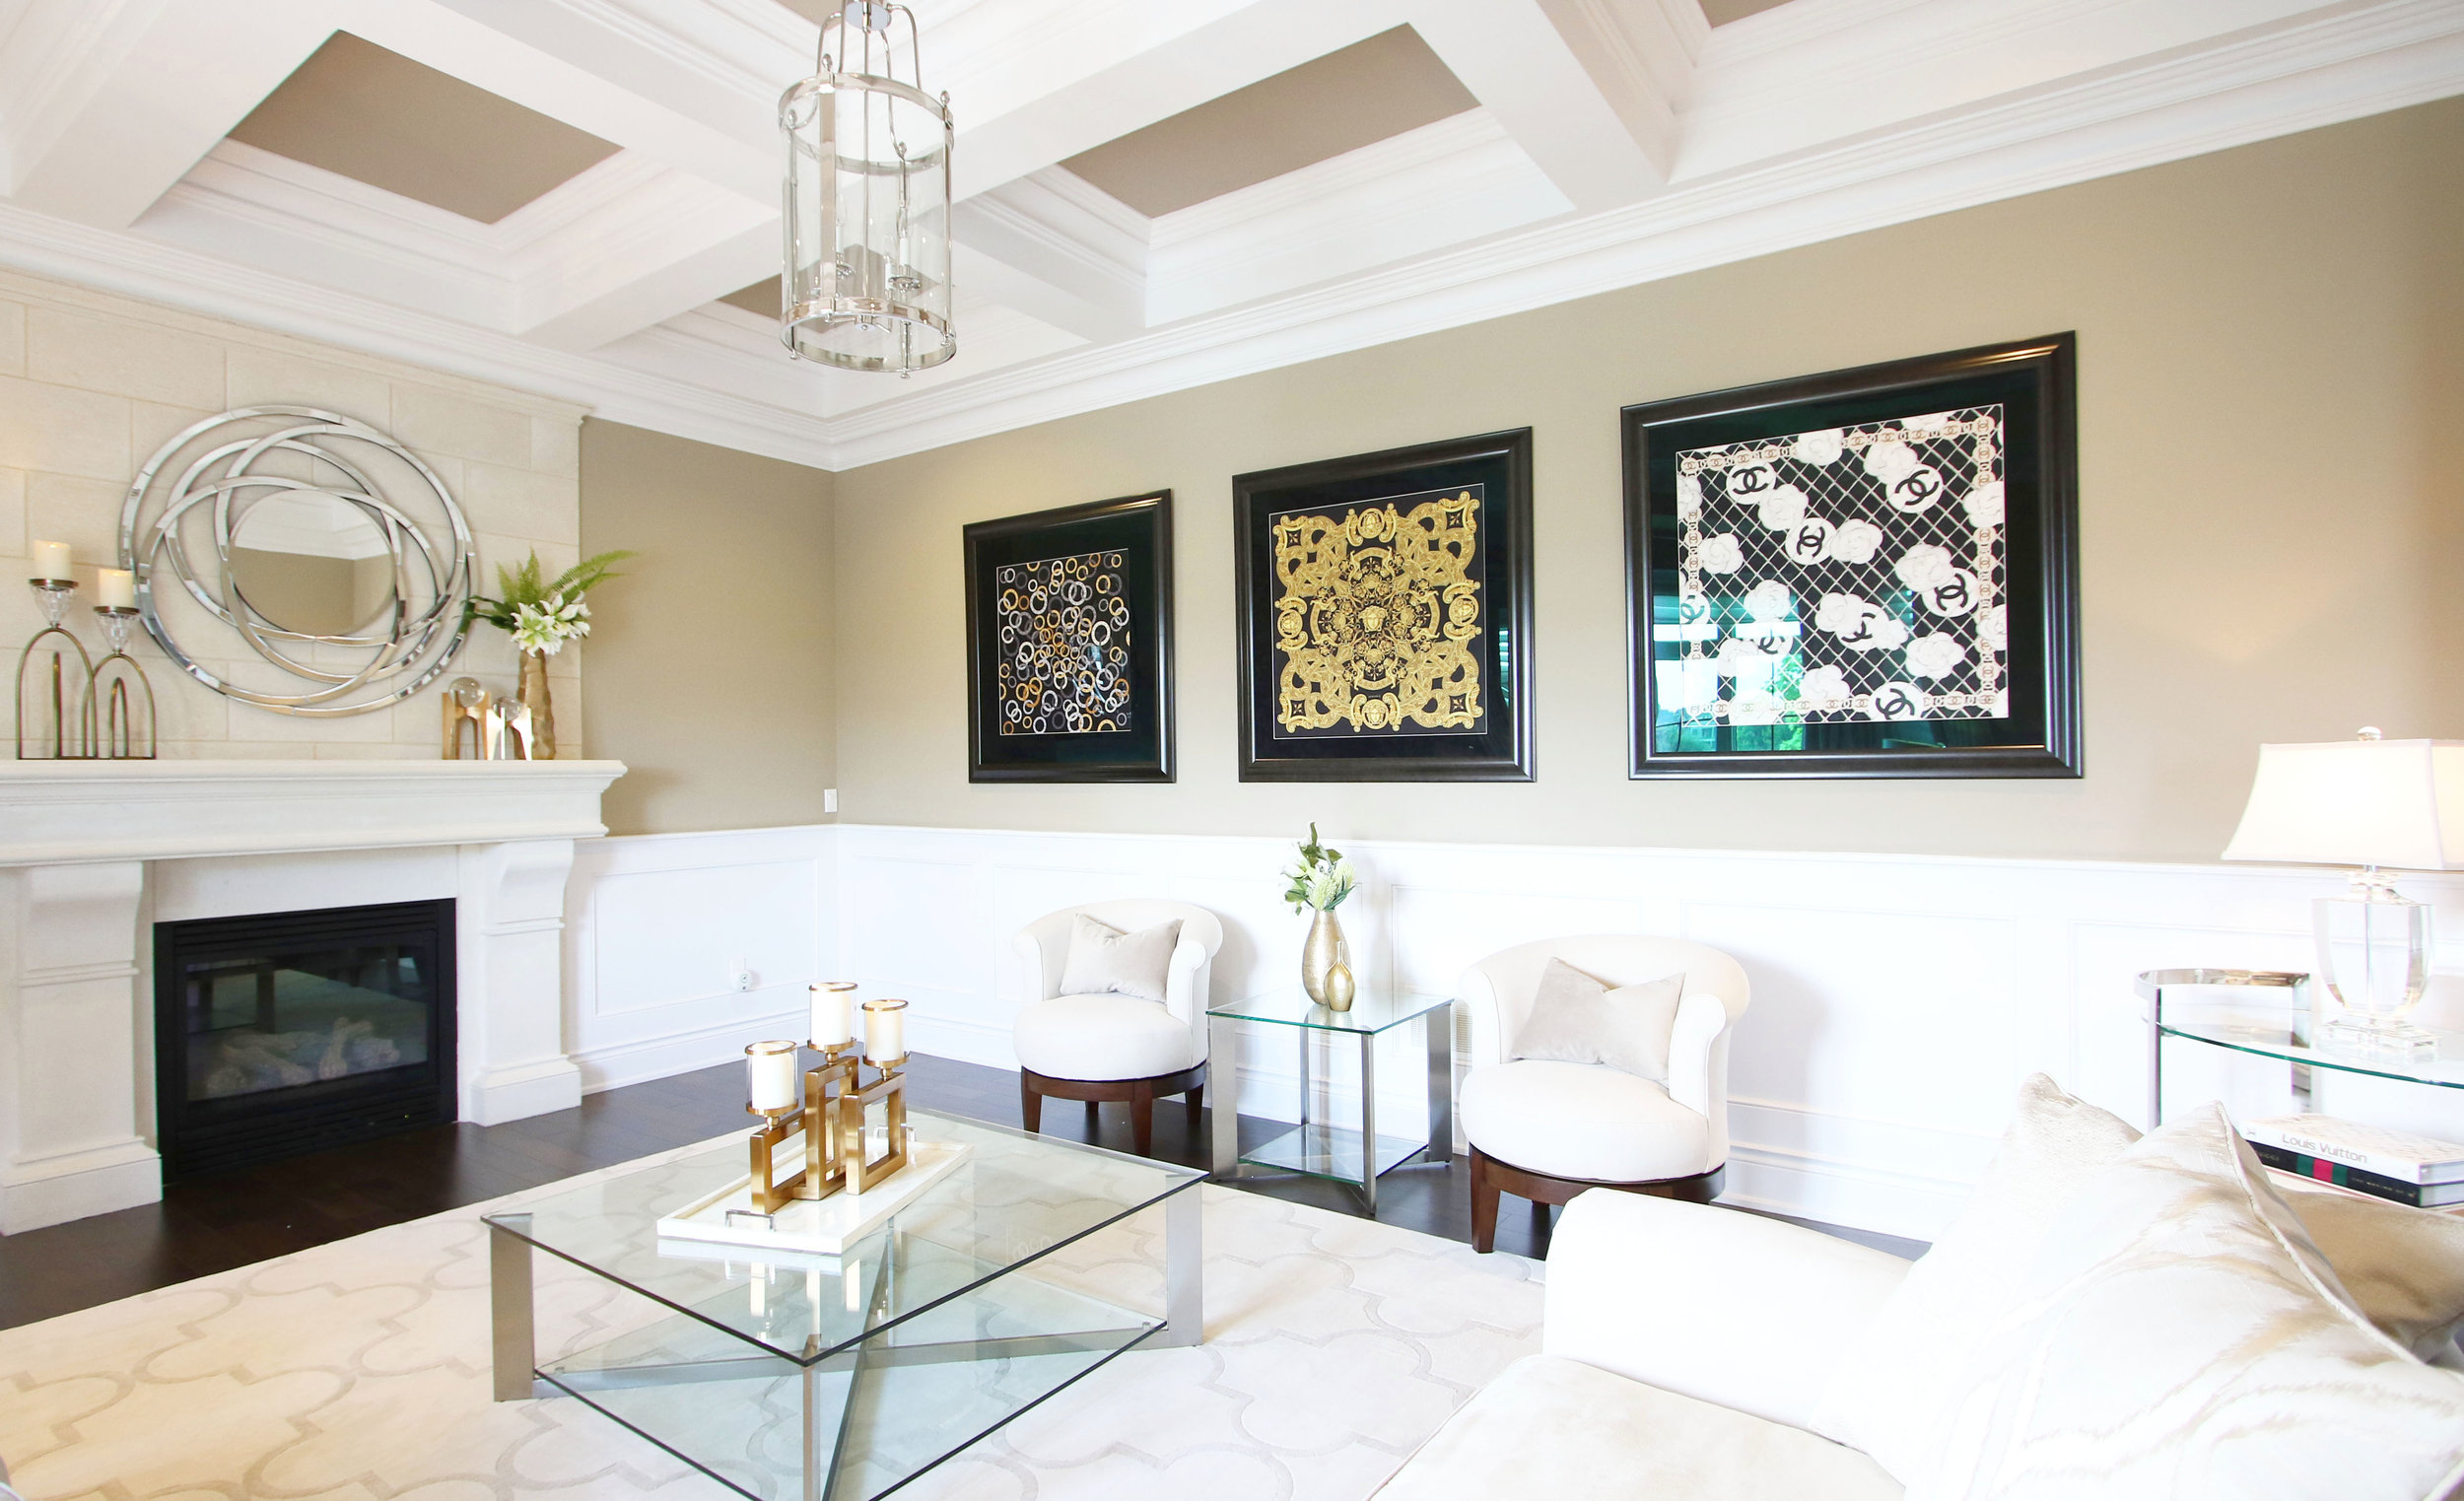 living-room-kimmberly-capone-interior-design